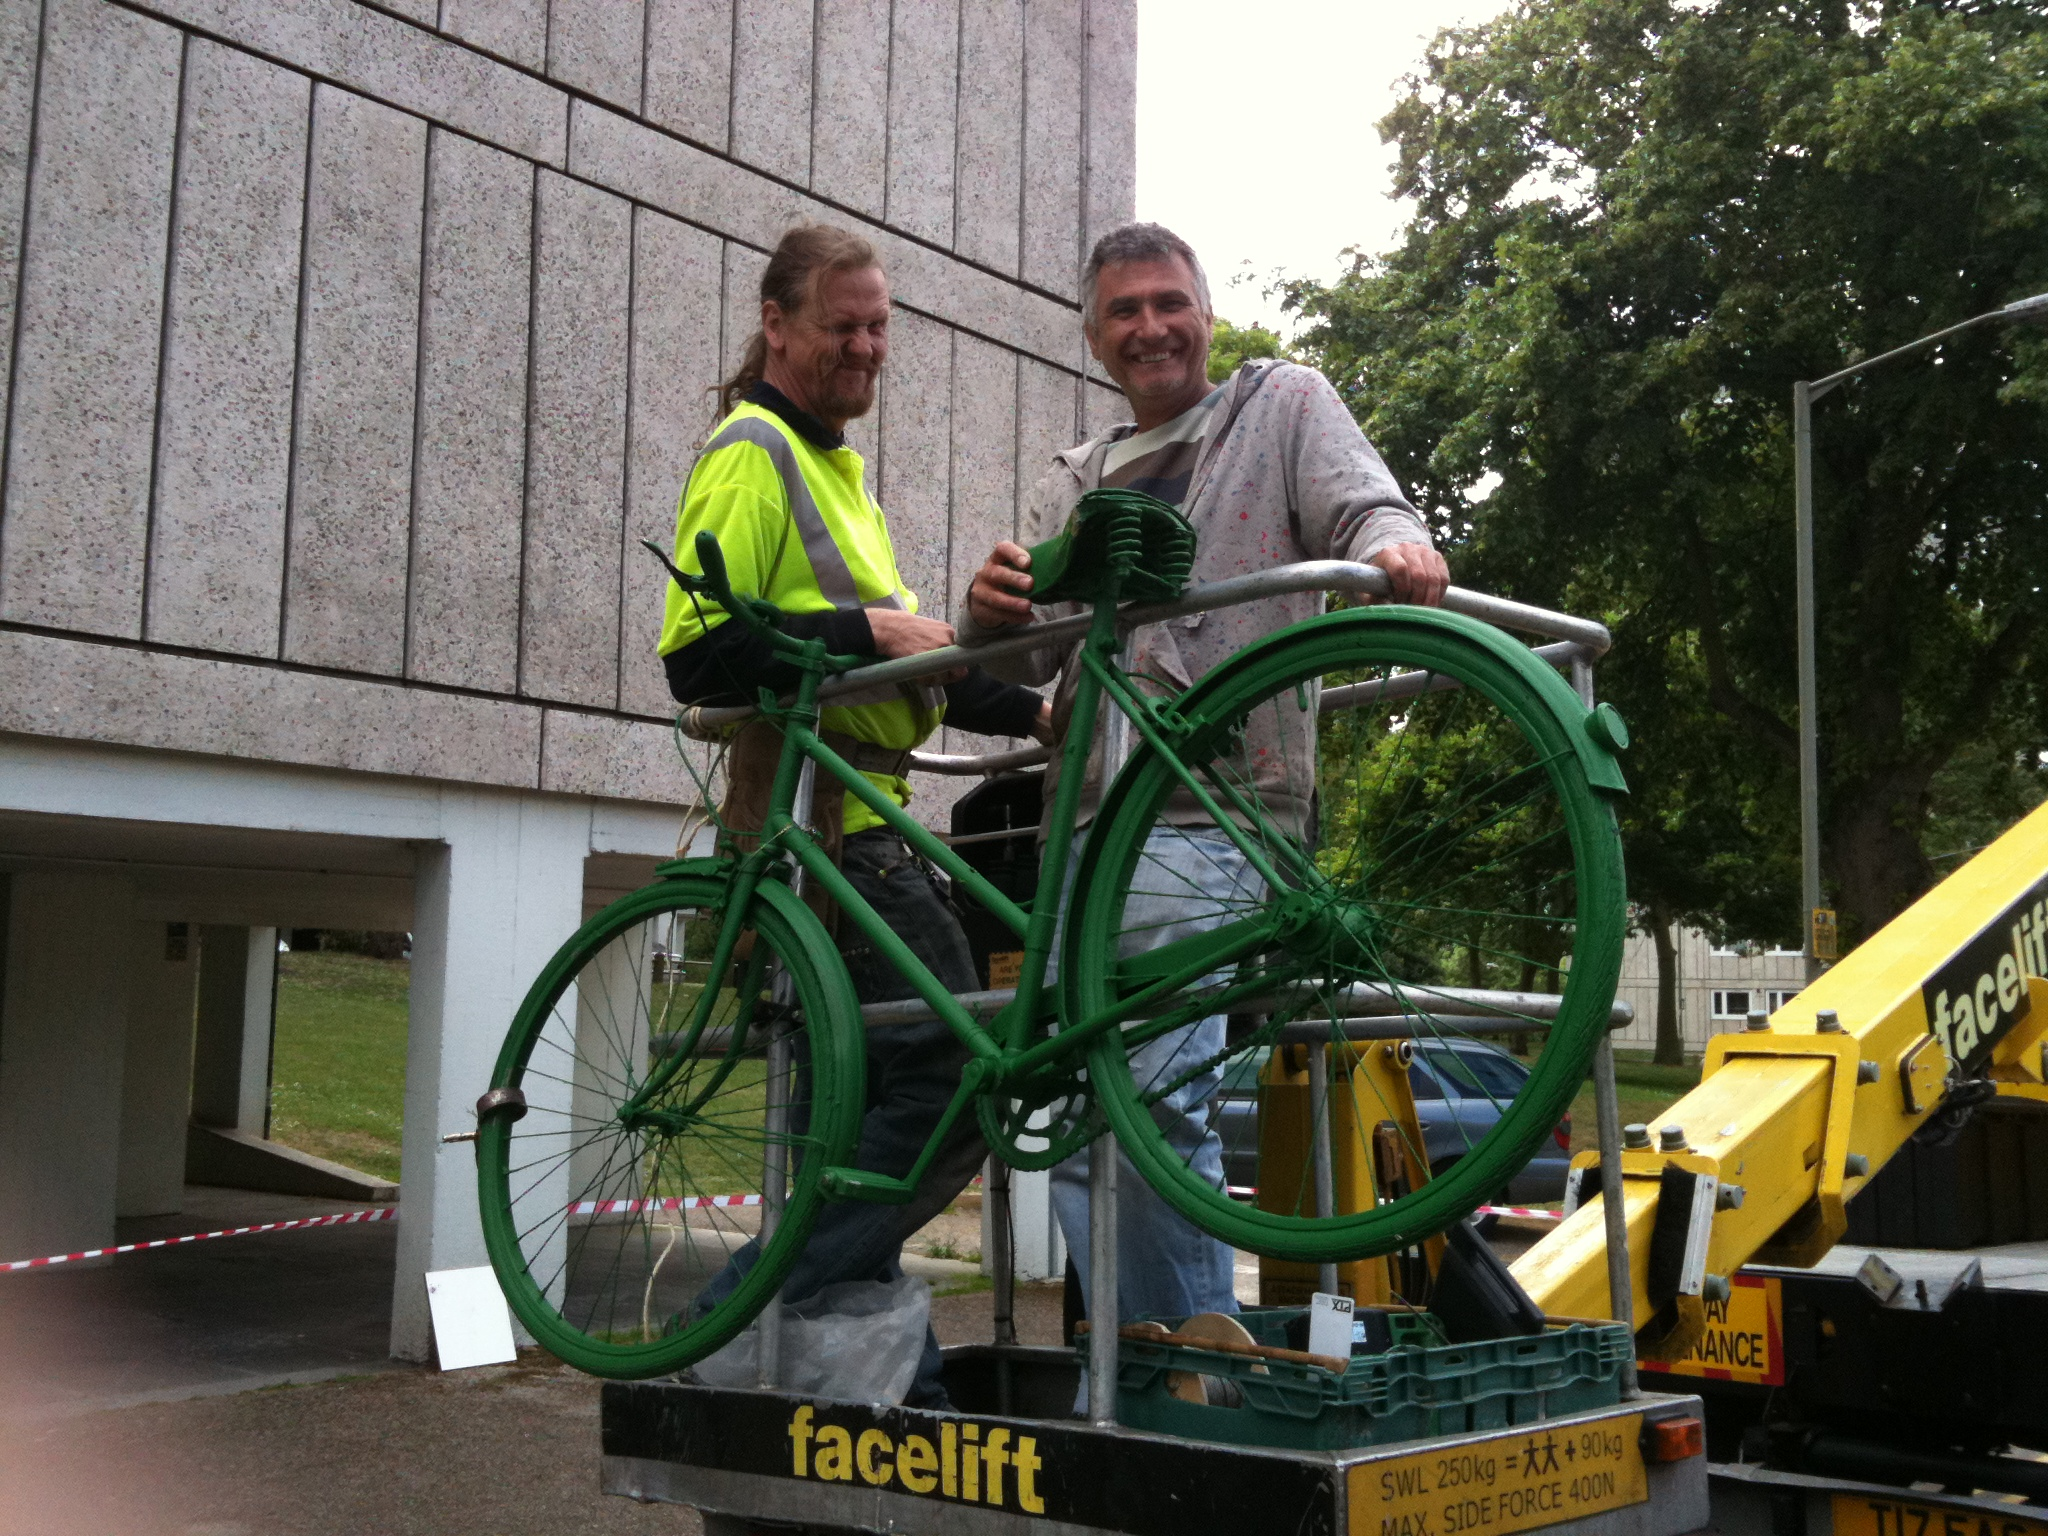 Performance Parking Technicians in cherry picker with a green bike